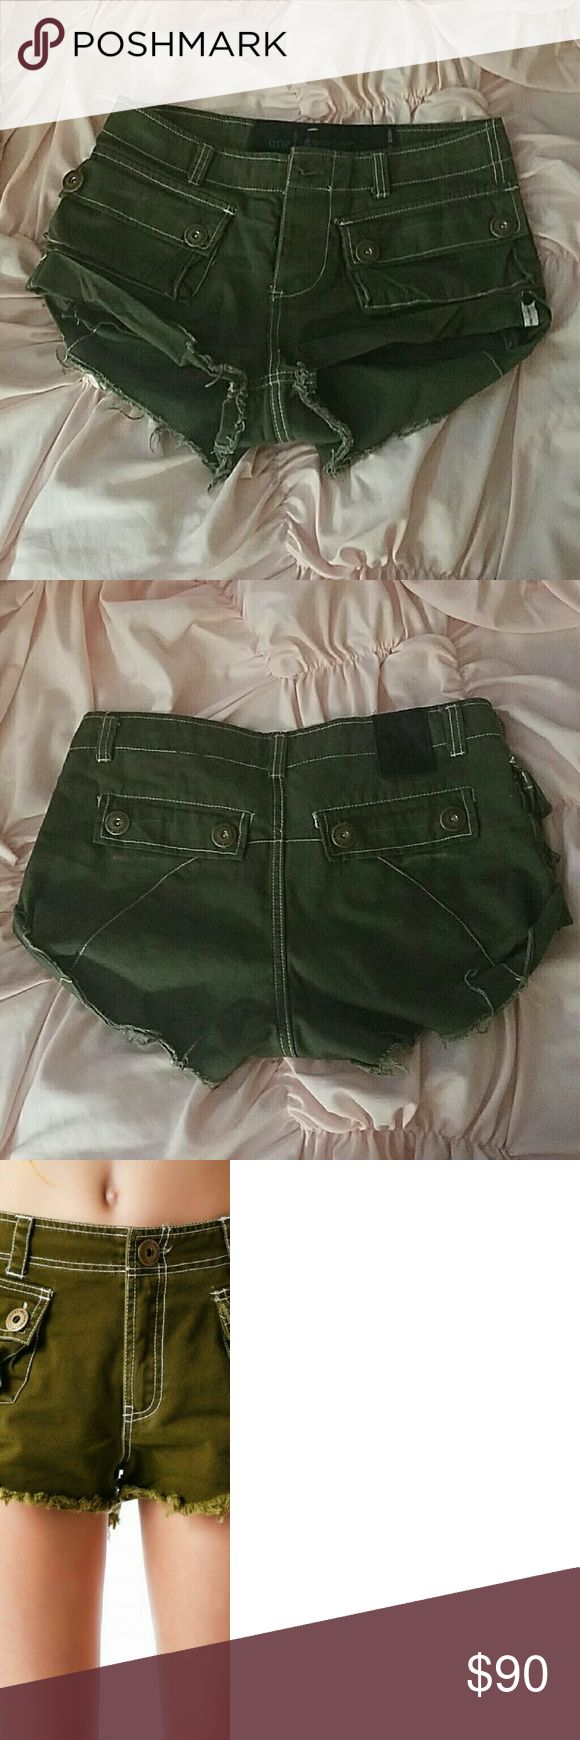 One teaspoon defender military shorts Size XS Fit large like all one teaspoon Perfect condition. Worn twice for a couple hours each.  Super cute; only willing to let go for the right price. One Teaspoon Shorts Cargos